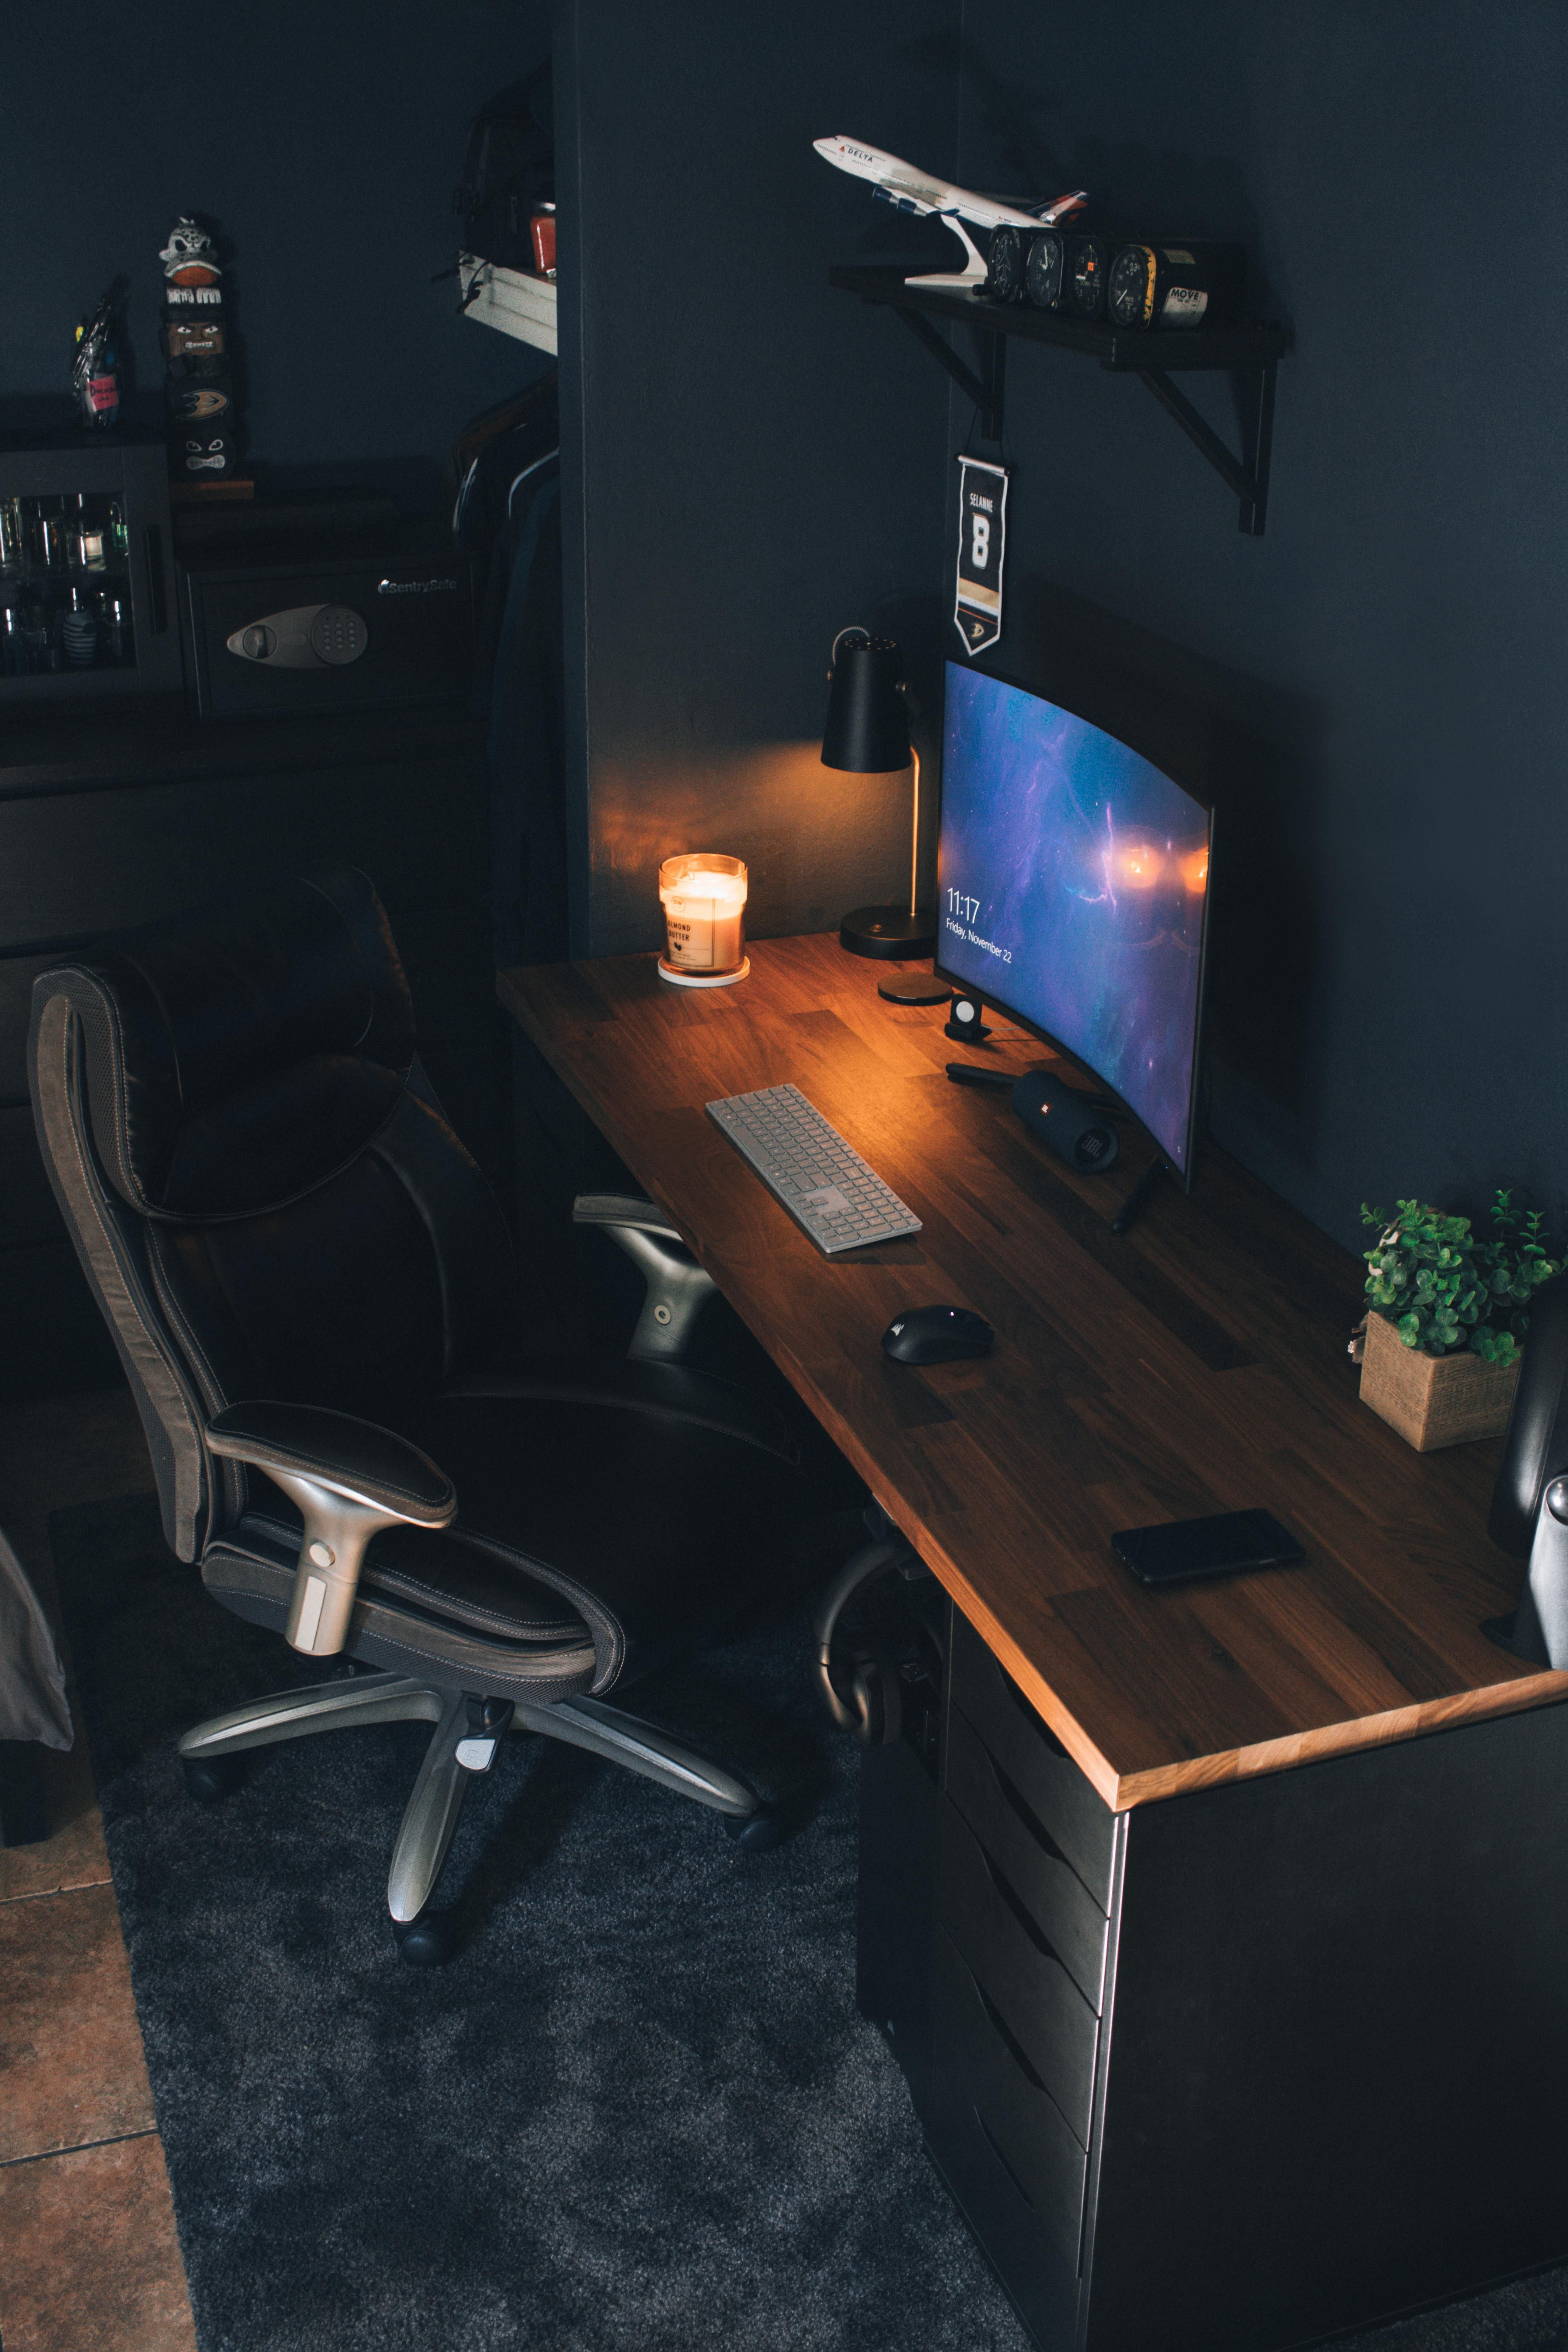 Disenodedormitorio In 2020 Home Office Setup Home Office Design Office Design